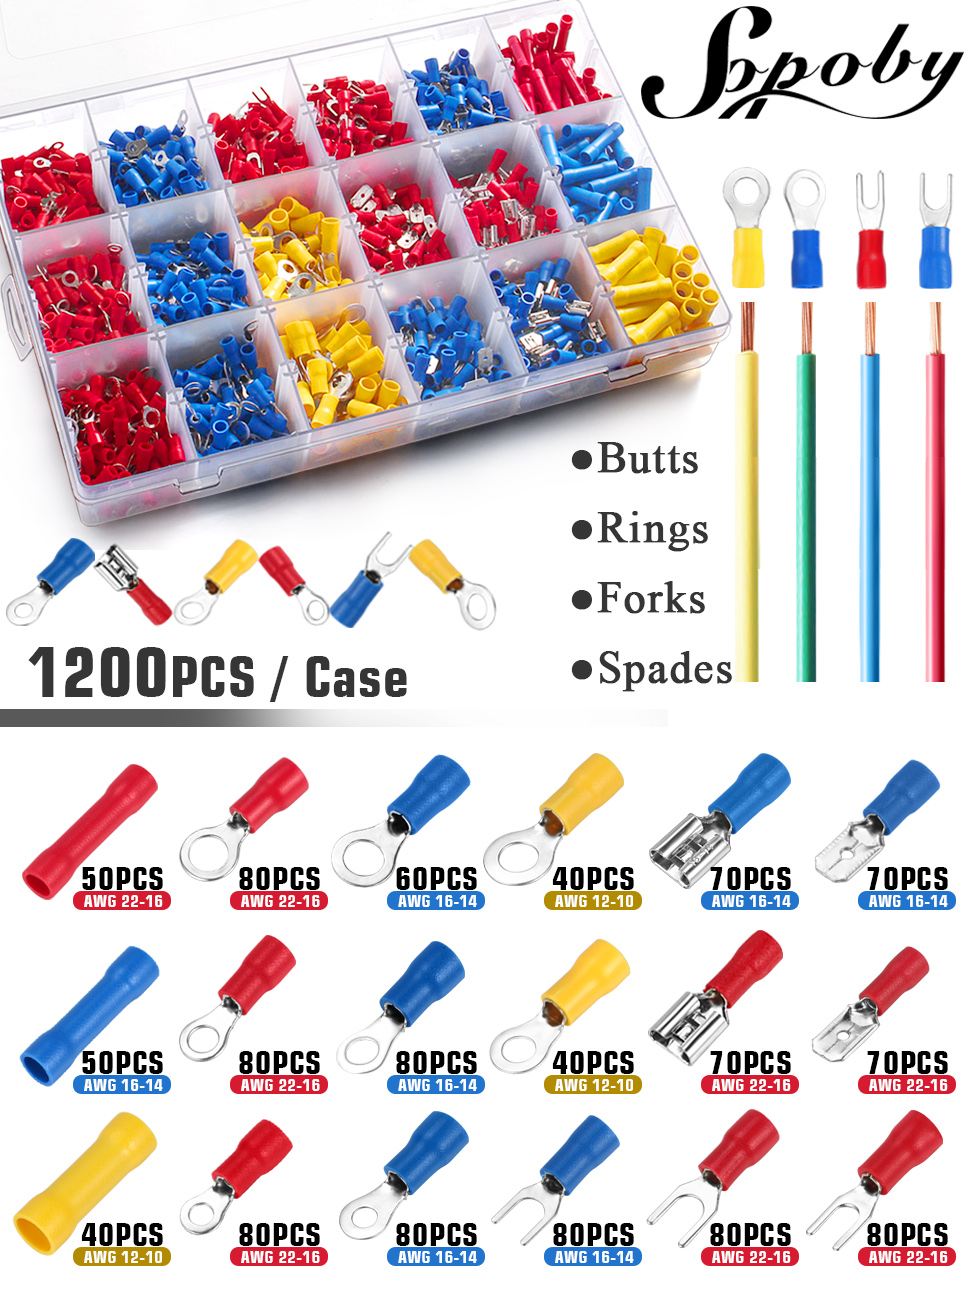 smseace 300pcs Ring//Butt//Spade//Fork Quick Disconnect Insulated Electrical Wire Connectors terminals AWG 22-16 16-14 12-10 Wire Connector Electrical Crimp Terminal for Automotive Home Wiring SM-06